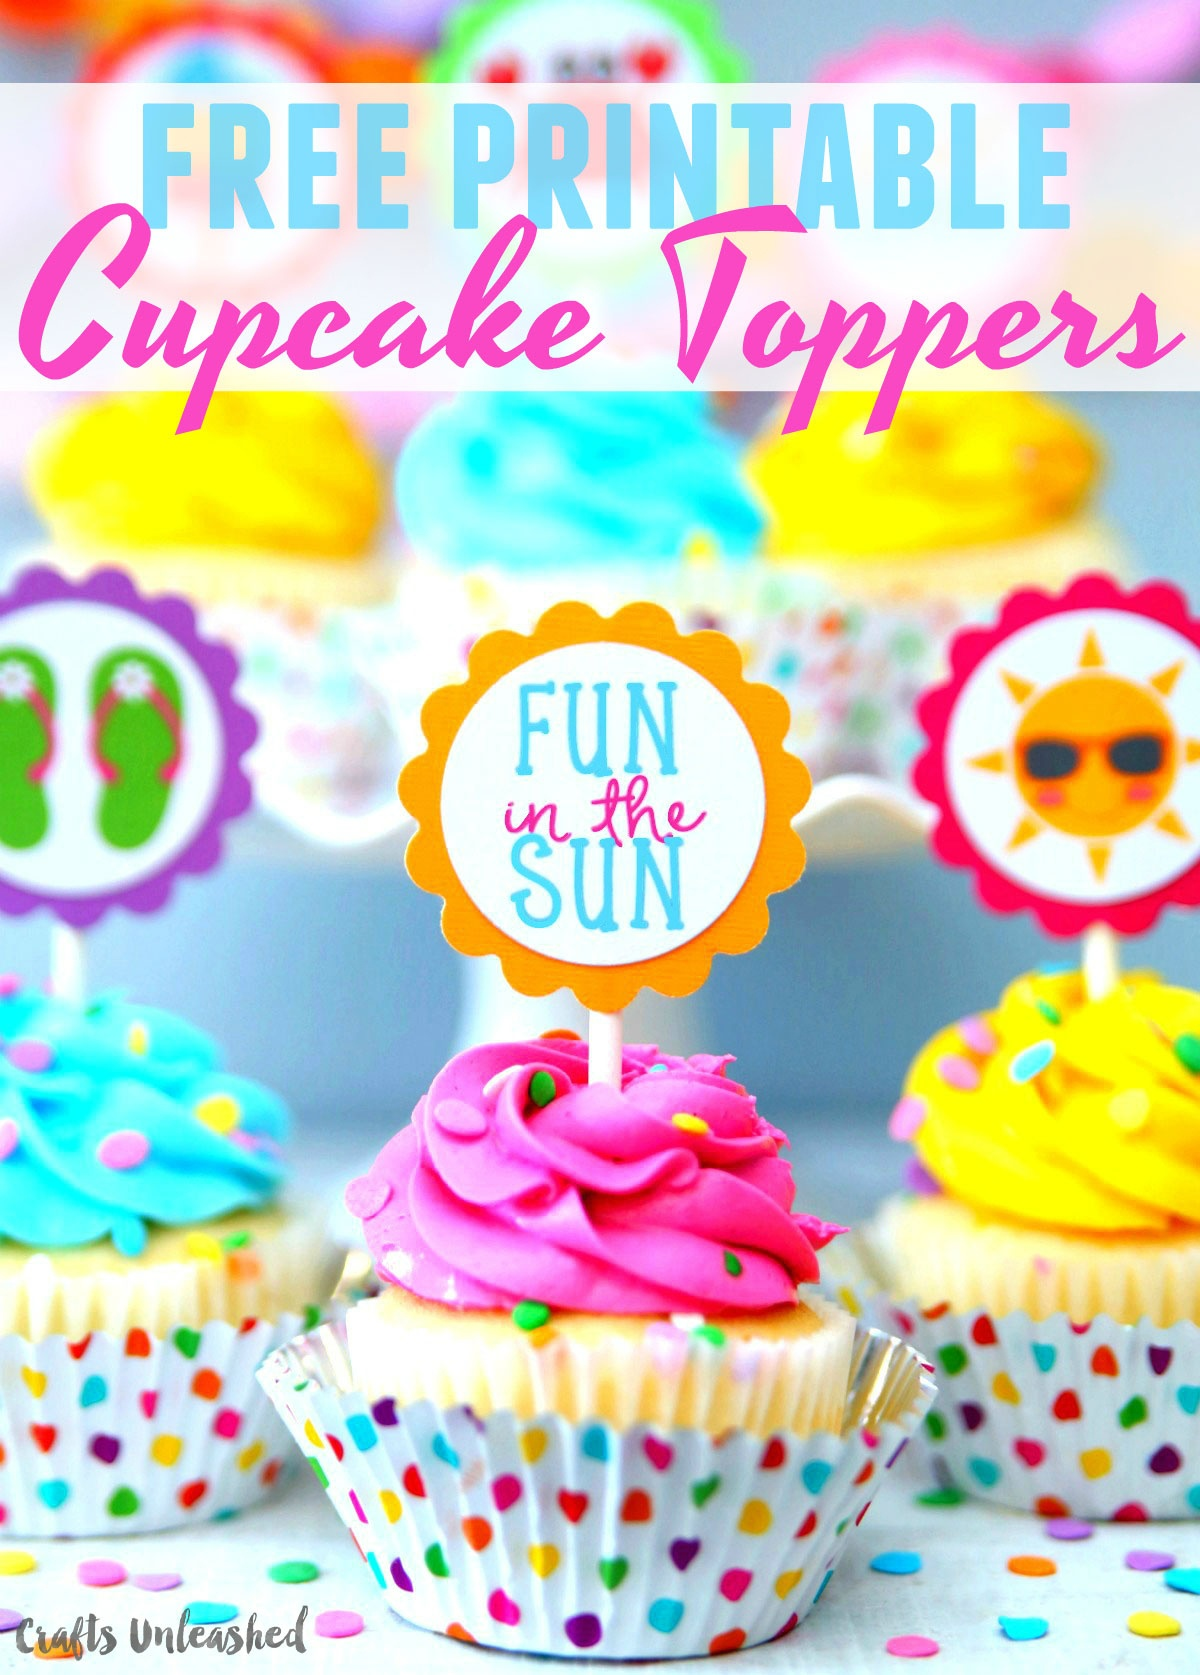 Summer Cupcake Toppers: Free Printables - Consumer Crafts - Free Printable Cupcake Toppers